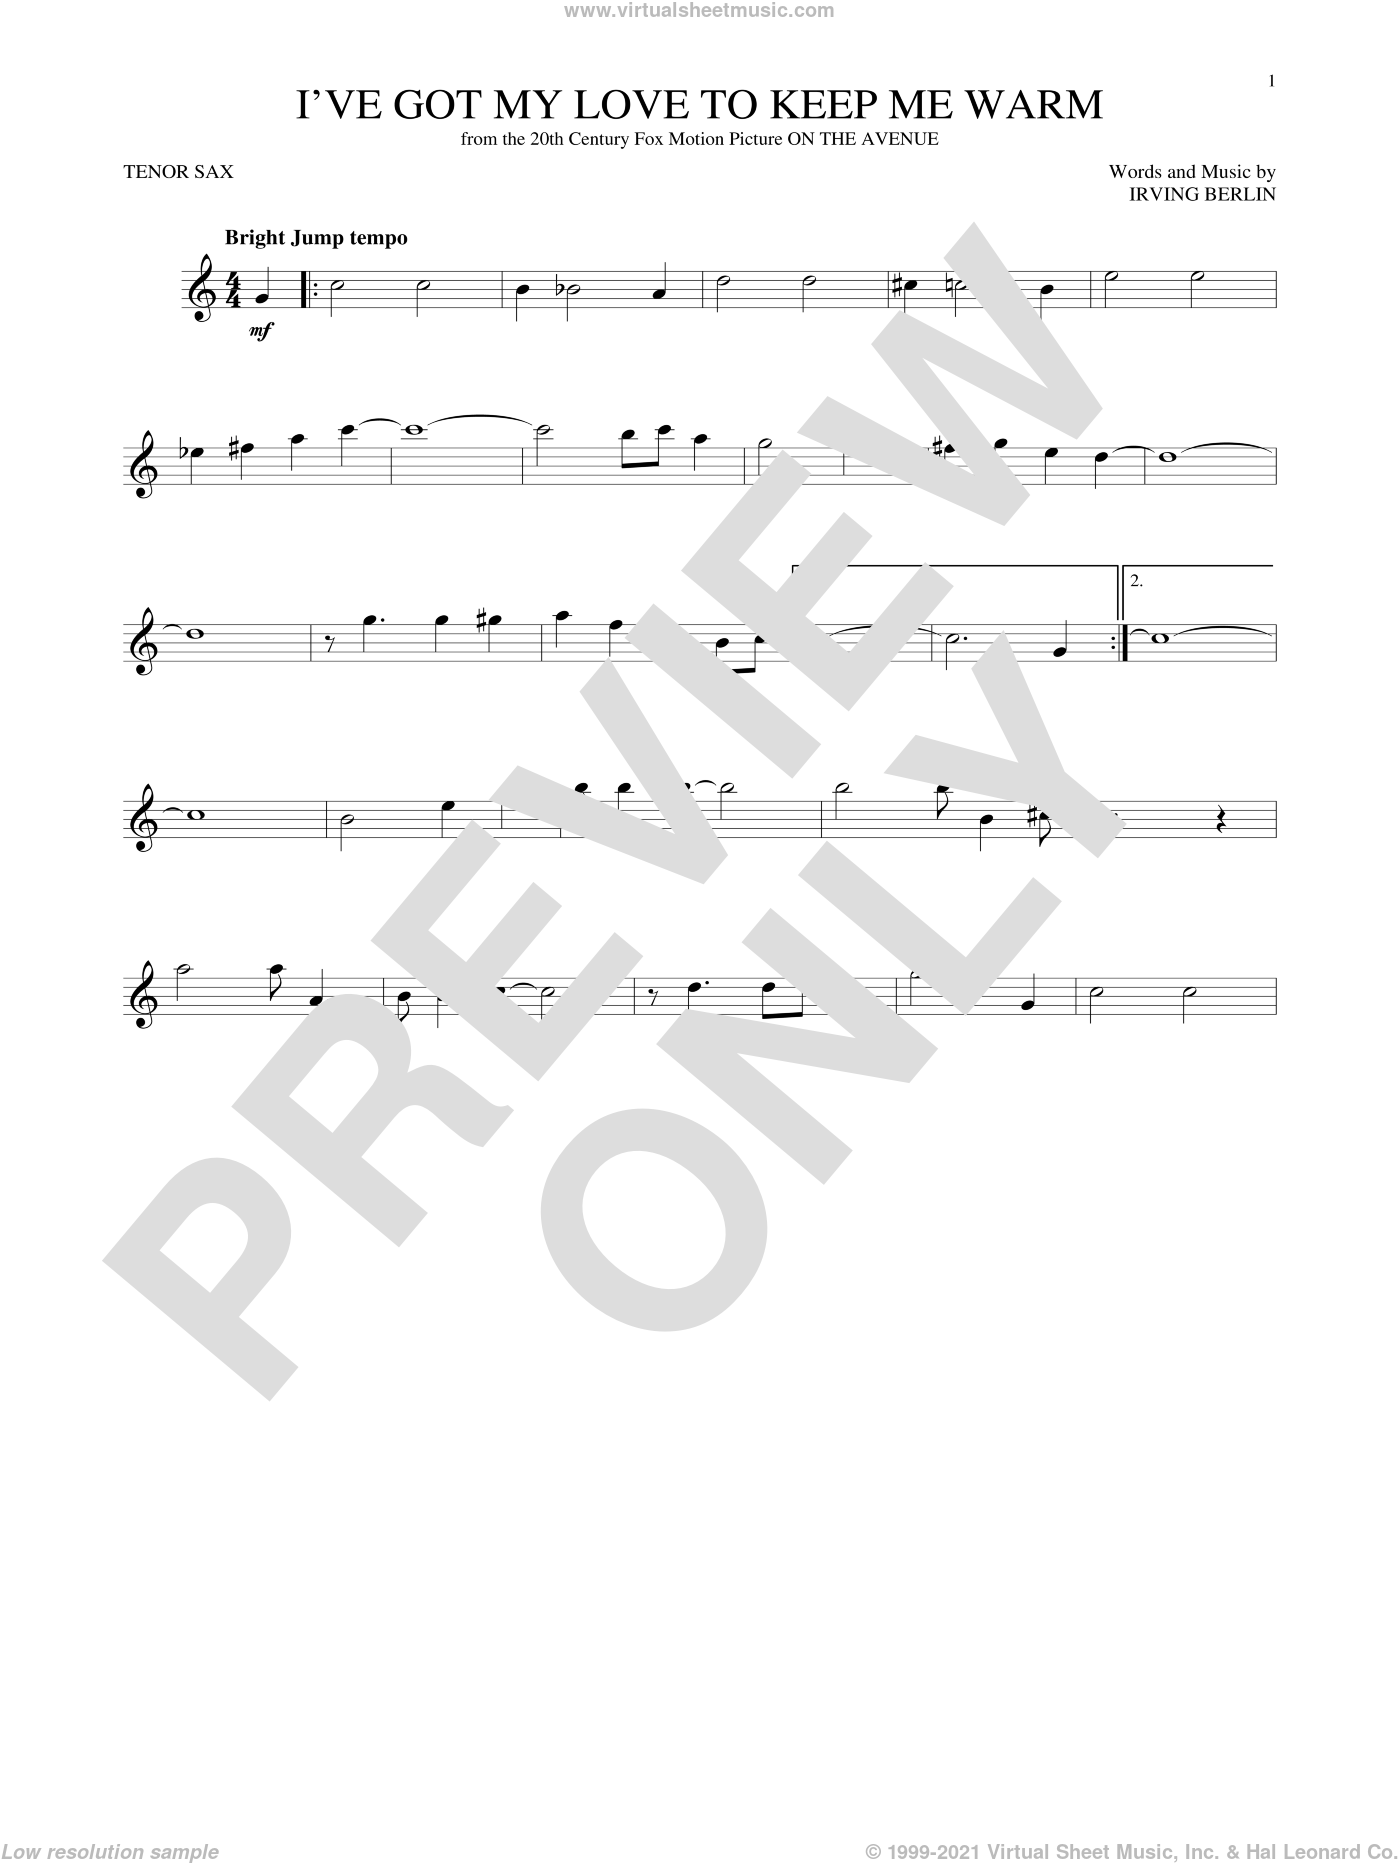 I've Got My Love To Keep Me Warm sheet music for tenor saxophone solo by Irving Berlin and Benny Goodman, intermediate skill level